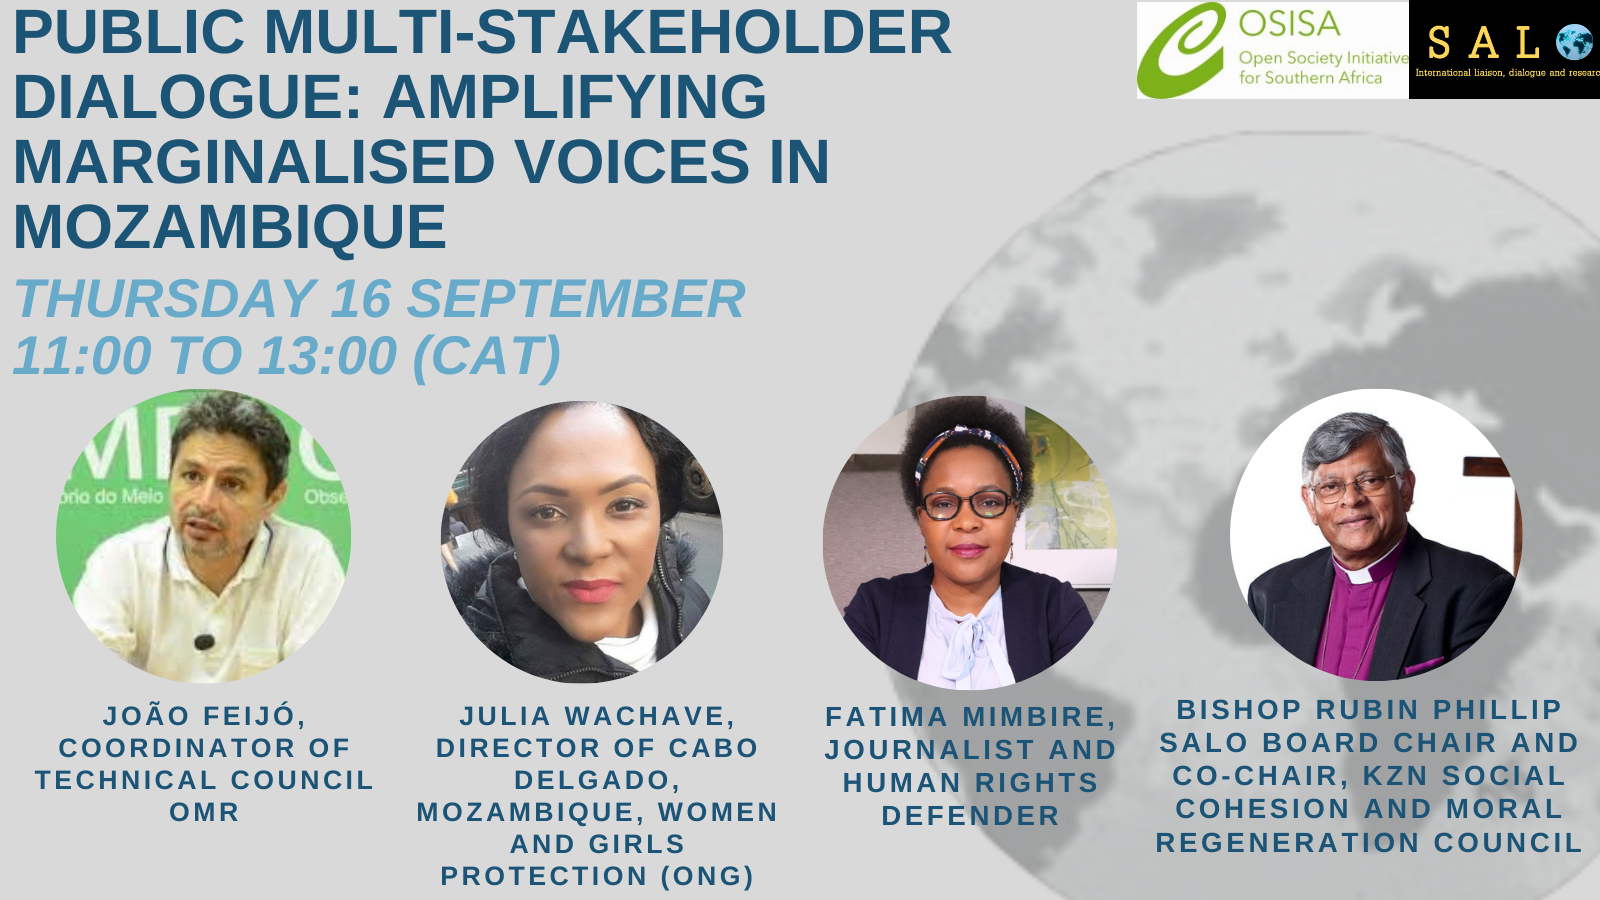 SALO, in partnership with the Open Society Initiative for Southern Africa – multi-stakeholder dialogue on the conflict in Northern Mozambique.